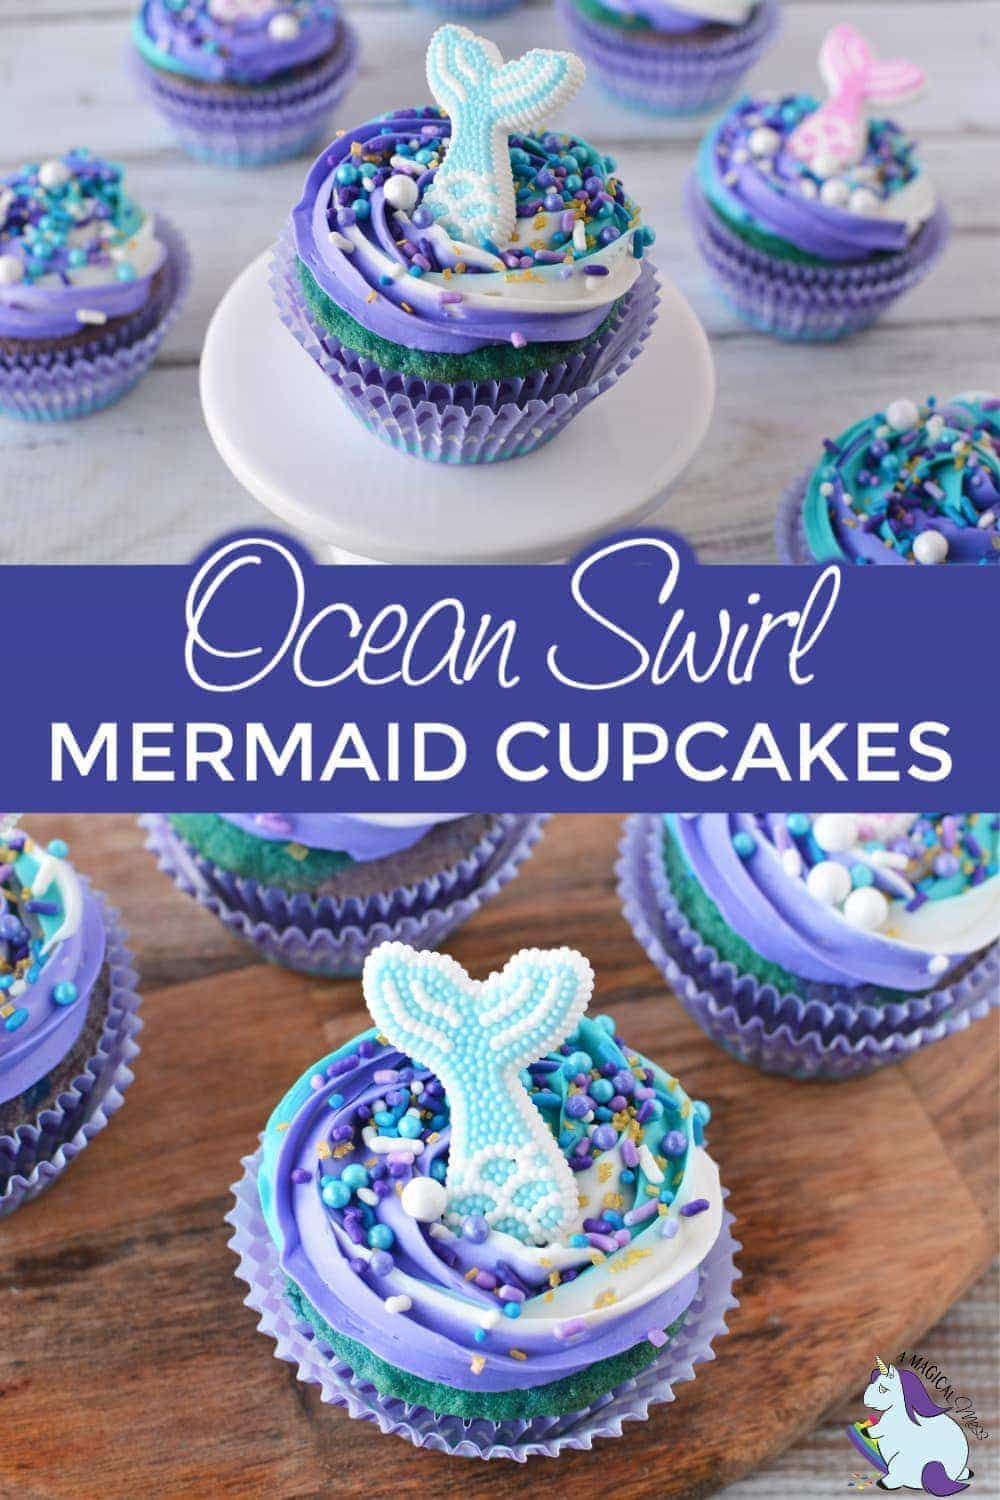 Mermaid cupcakes with a sugary fin topping.